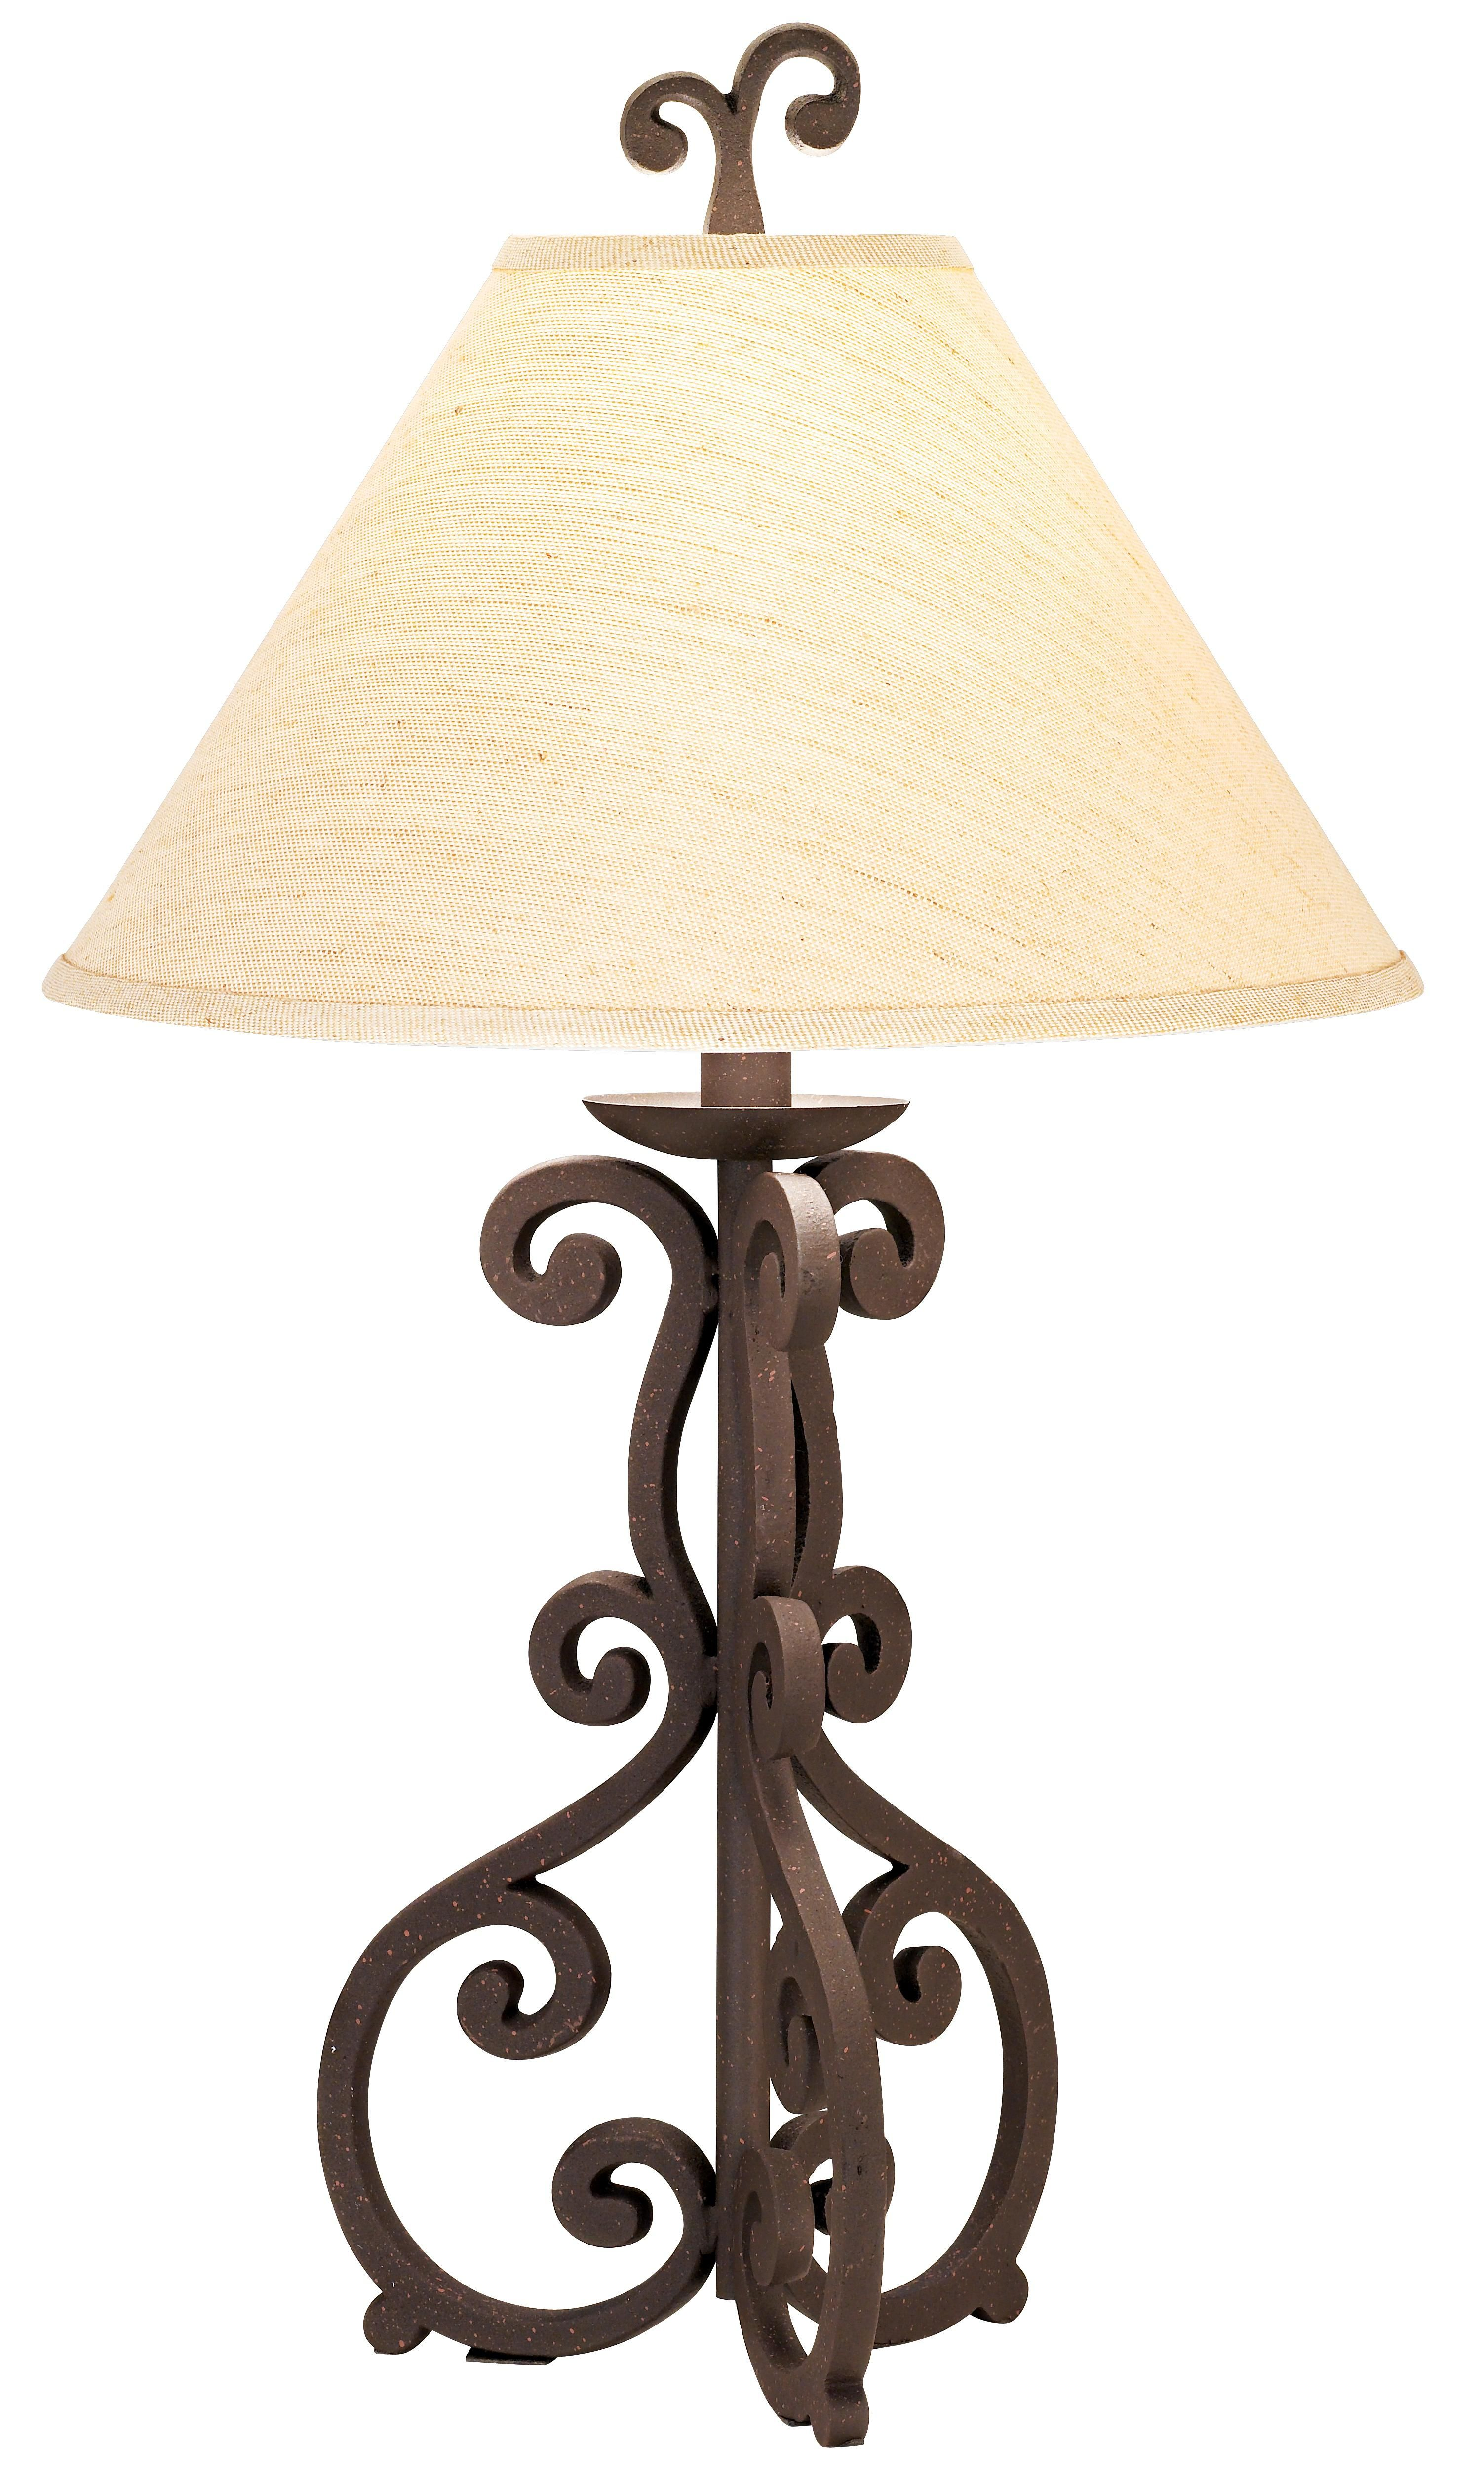 High iron scroll table lamp my bedroom pinterest high iron high iron scroll table lamp aloadofball Images